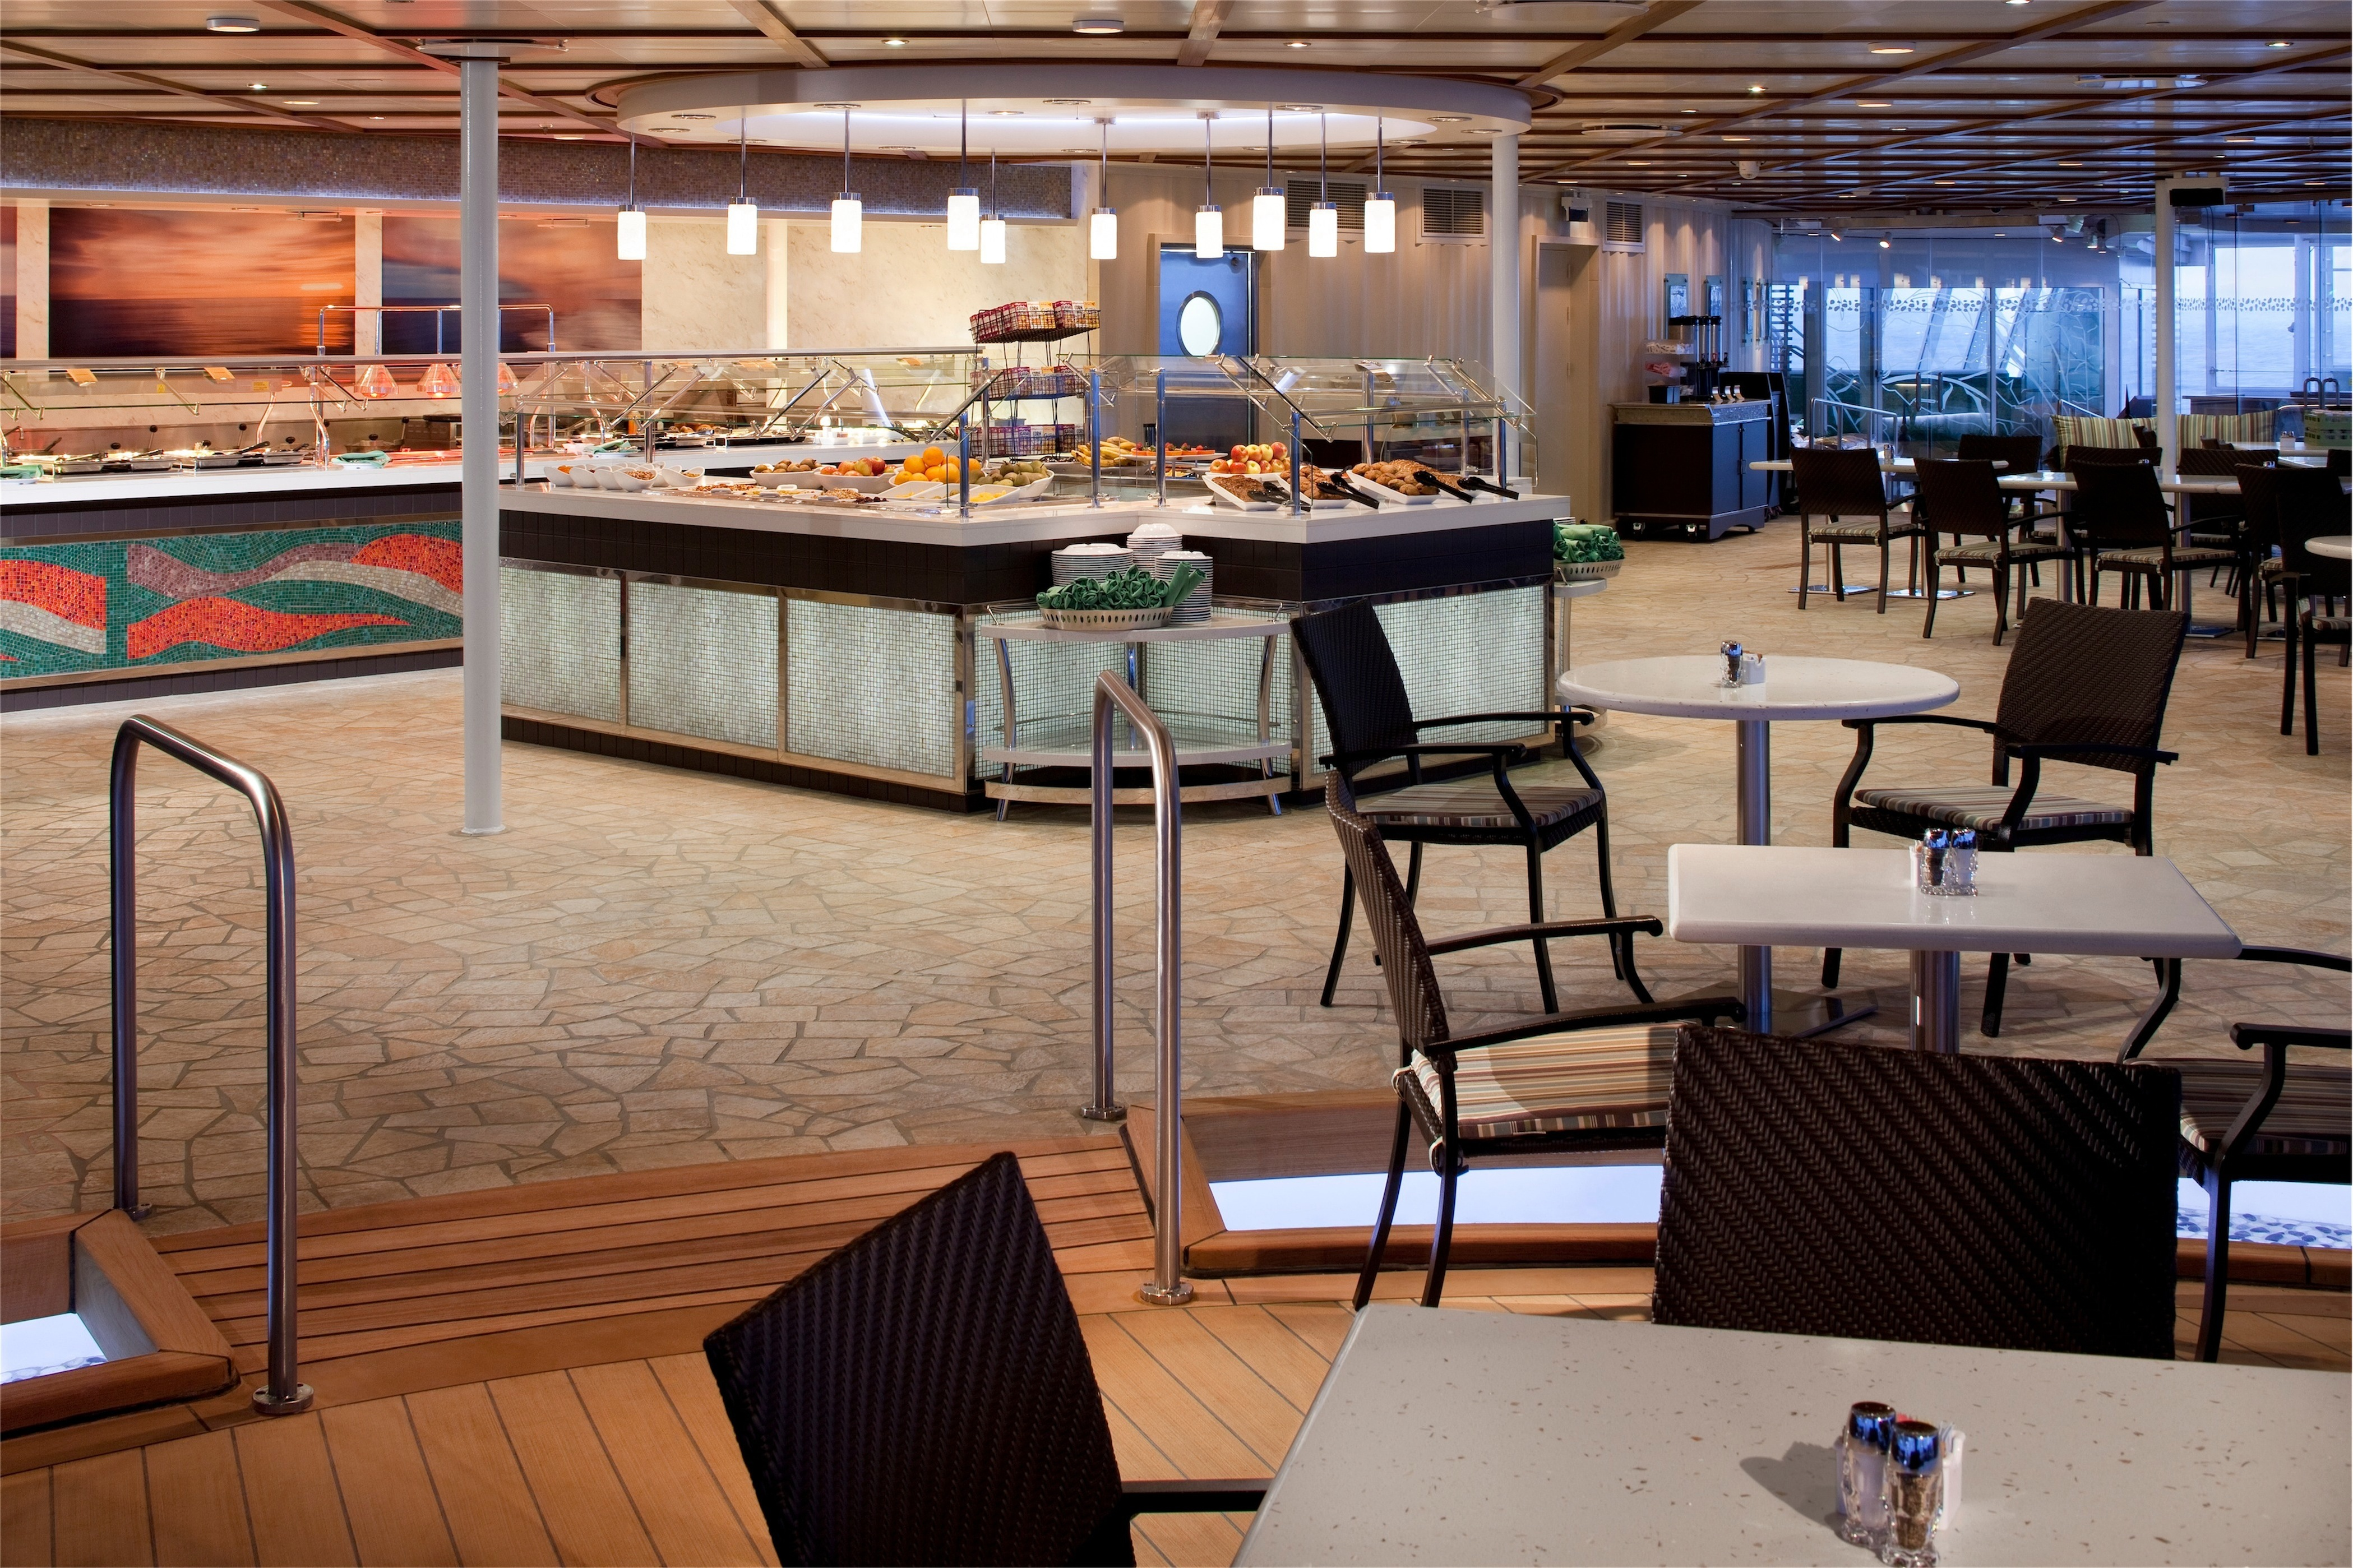 Royal Caribbean International Allure of the Seas Interior Solarium Bistro.jpg